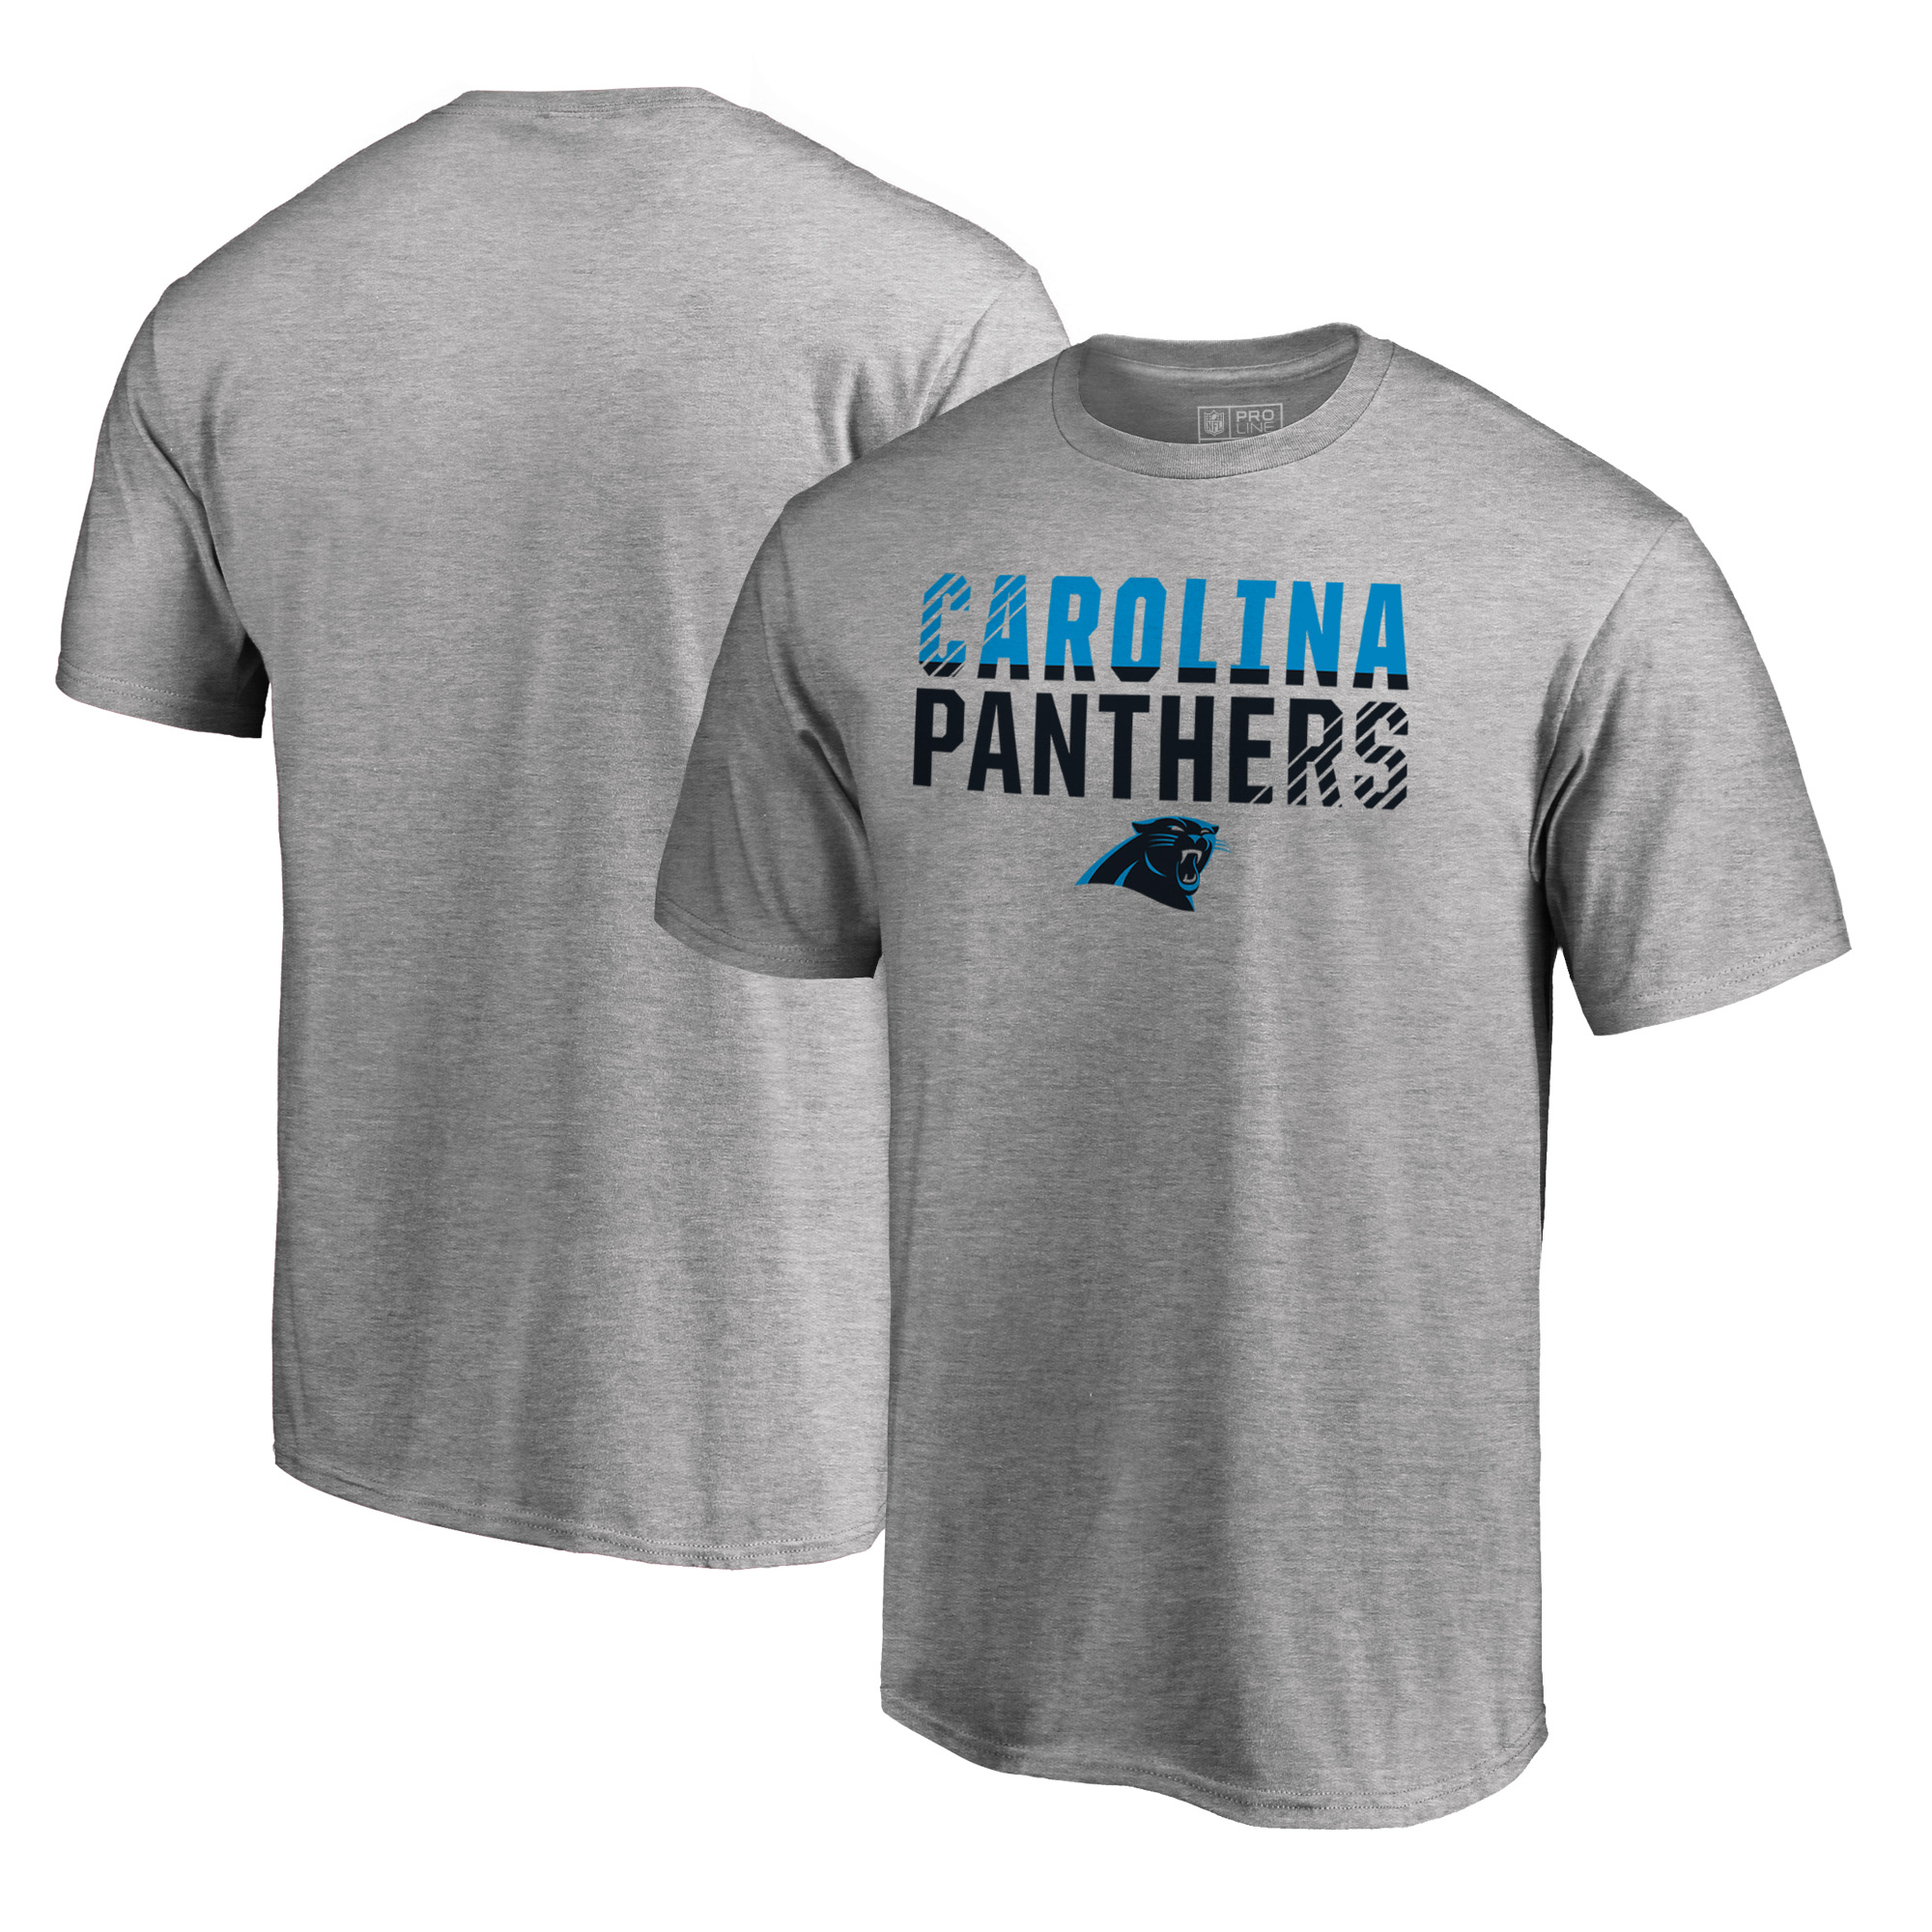 Carolina Panthers NFL Pro Line by Fanatics Branded Iconic Collection Fade Out T-Shirt - Ash